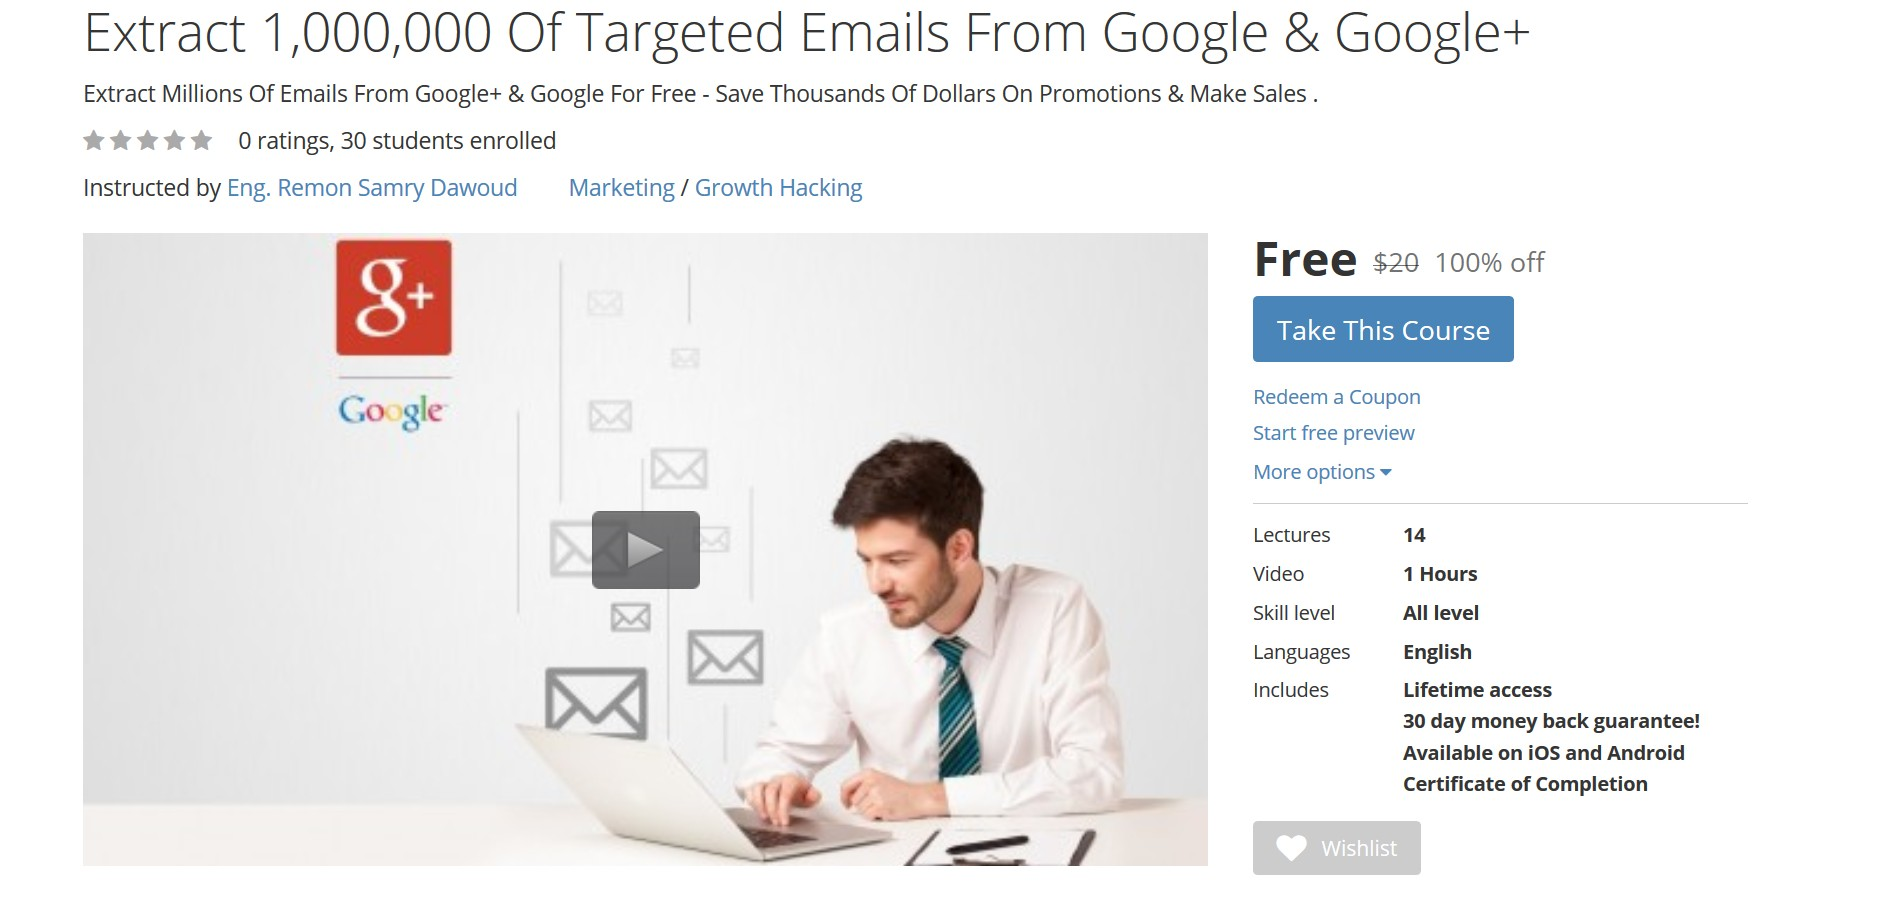 Free Udemy Course: Extract 1,000,000 Of Targeted Emails From